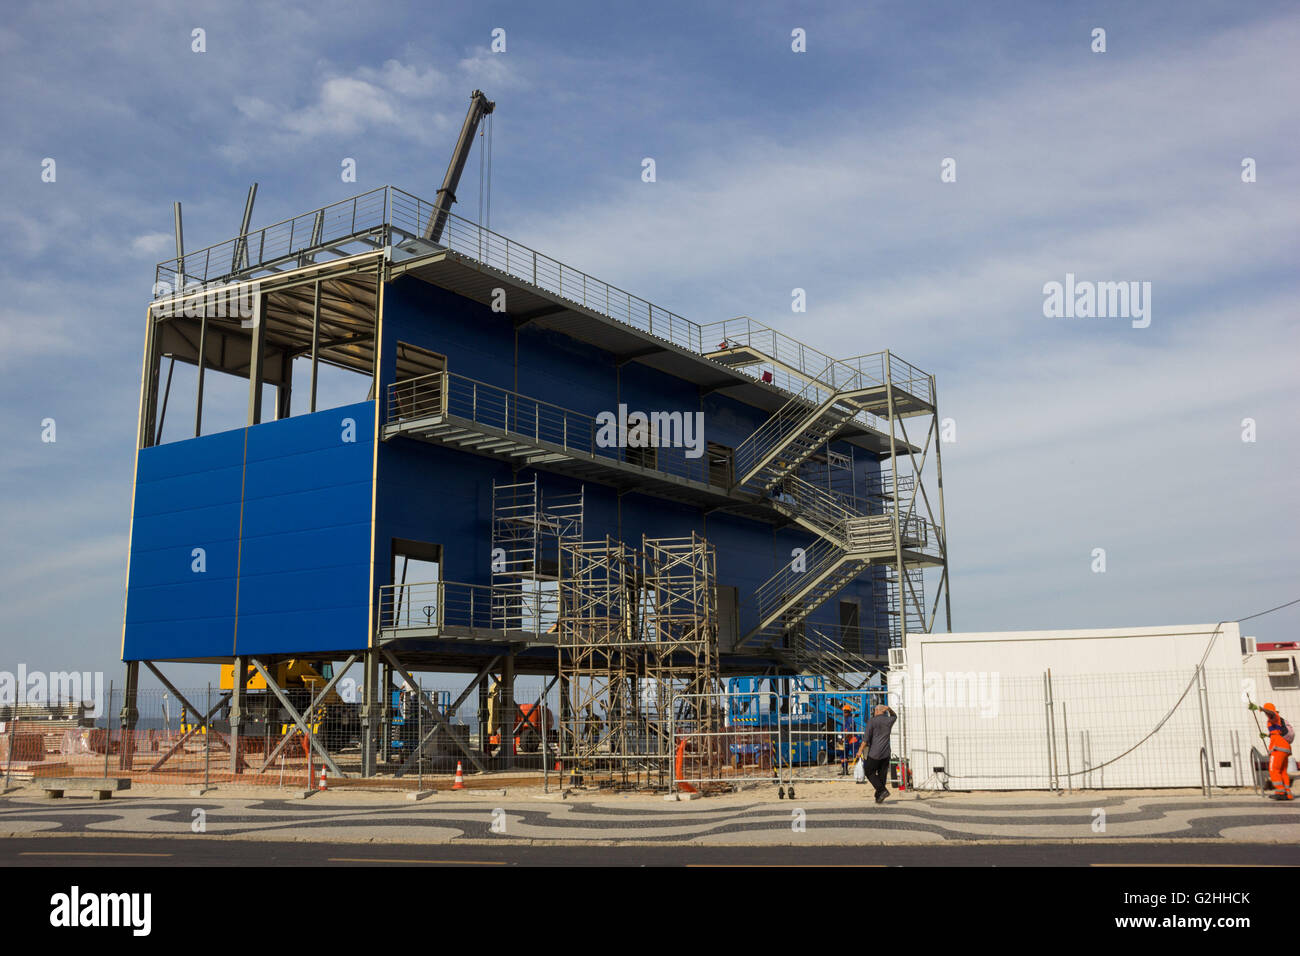 JANUARY RJ DE JANEIRO - 05/30/2016: STRUCTURE FOR OLYMPICS RIO 2016 - TV studios of Vista being built on the sand Stock Photo